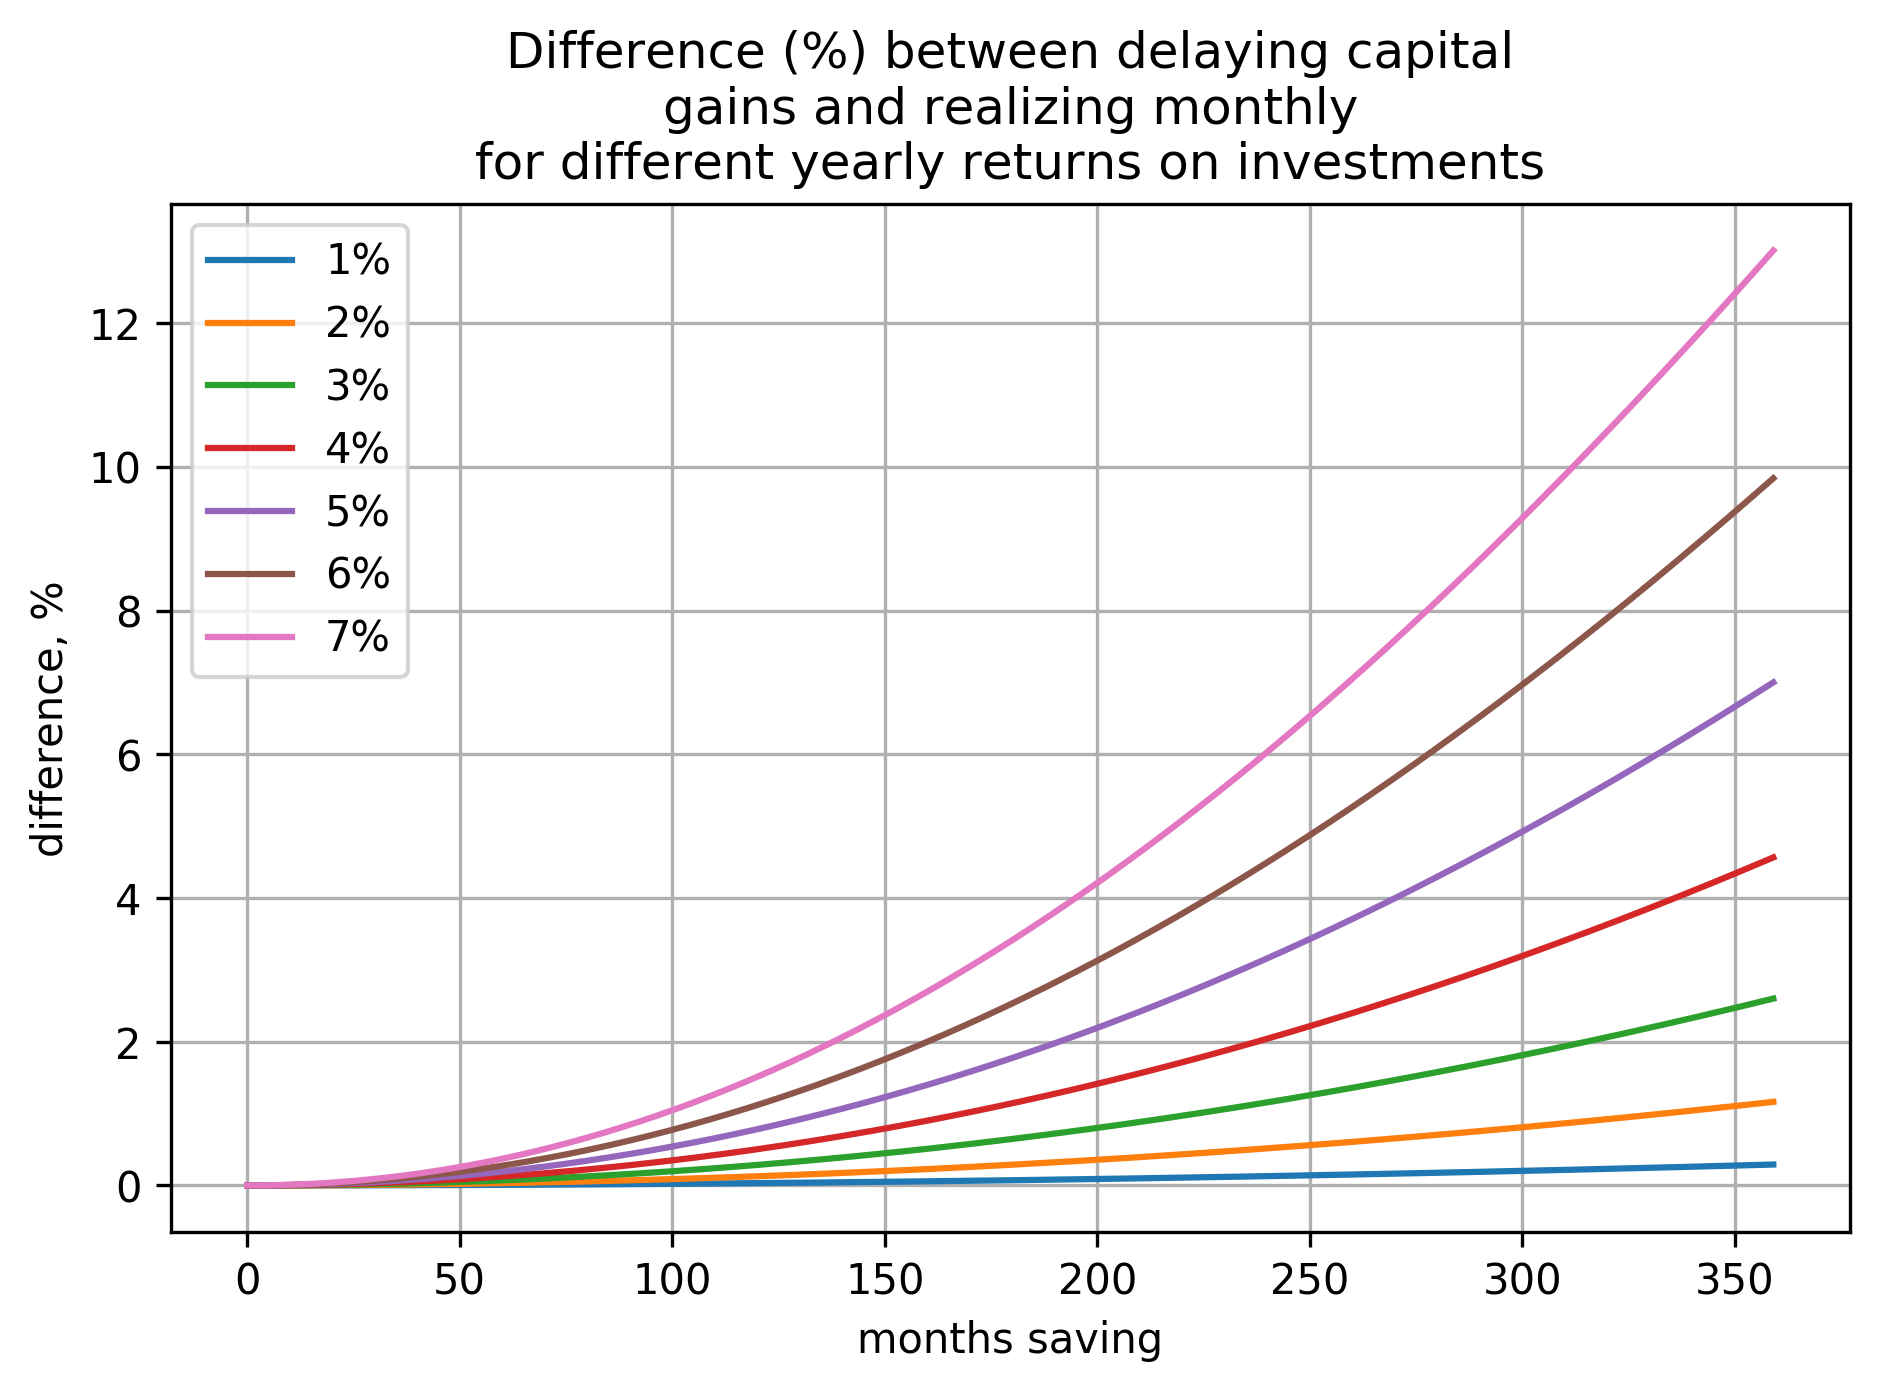 a plot showing how difference (in percents) between the two cases (delaying capital gains and realizing them monthly) depends on number of months invested and yearly return on investment